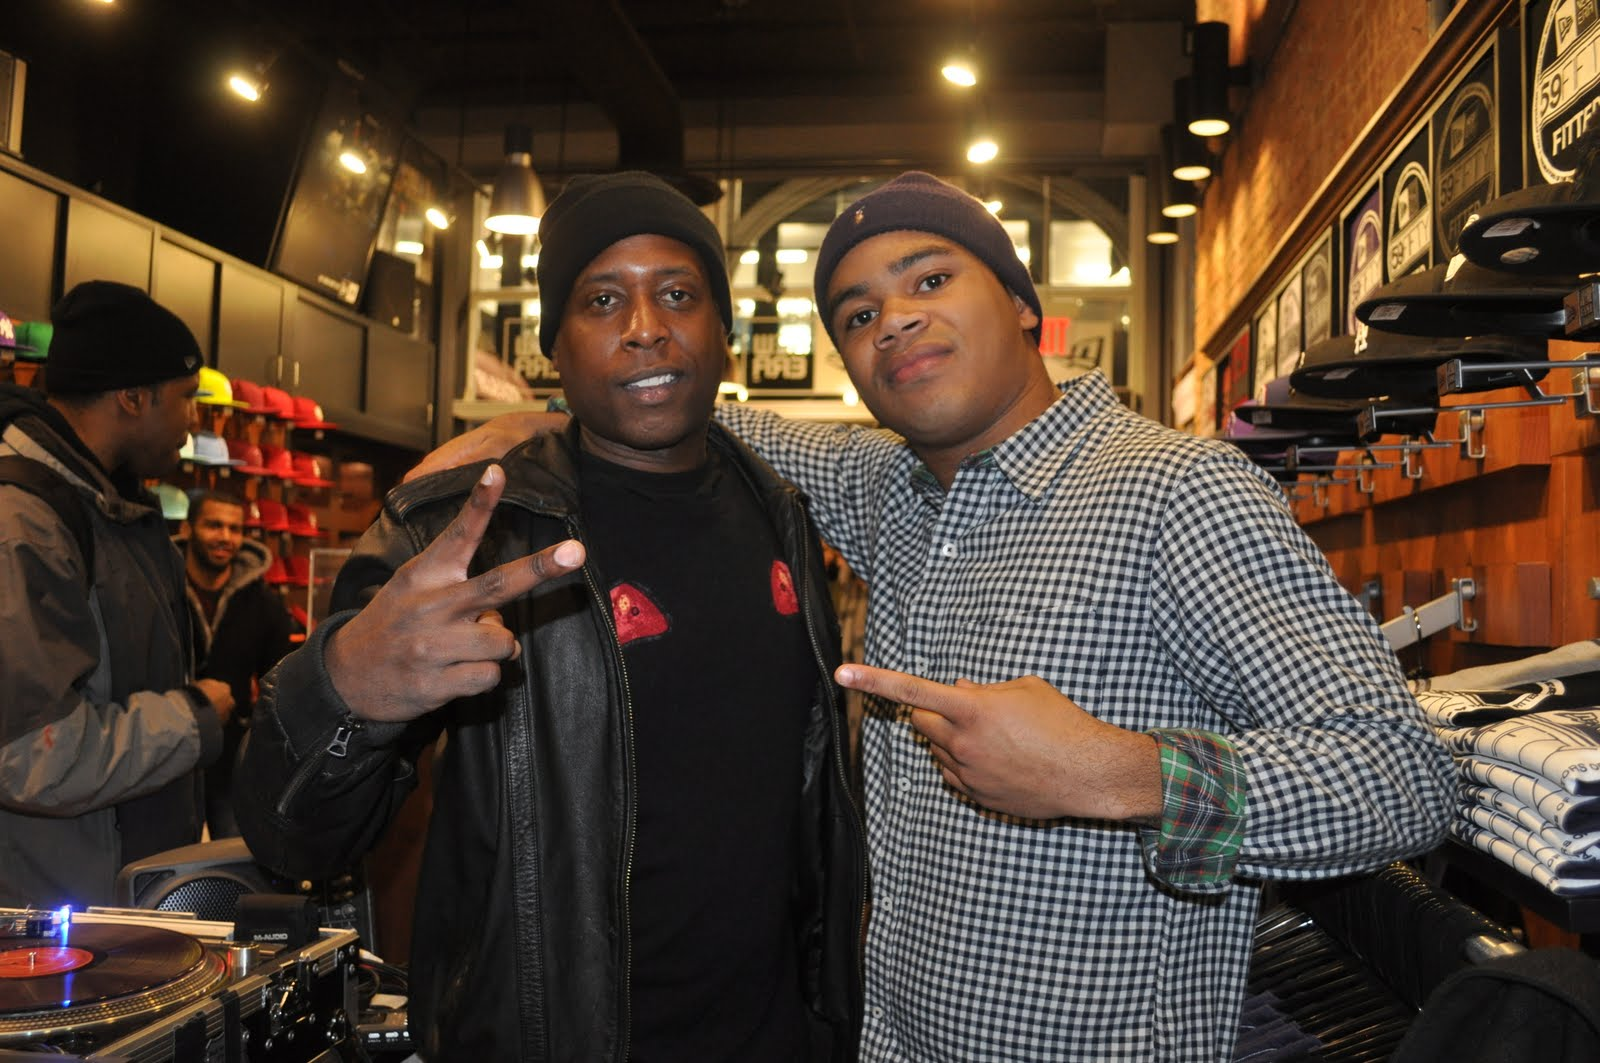 #GutterRainbows. Talib!! A True MC.. I am humbled to get the chance to work with him. Tonight was his   Gutter Rainbows   album release party at the New Era Flagship Store NYC. This was definitely a dope event!! Talib is the man... he & his crew showed mad love and were boppin' all throughout my set. @BlowHipHopTv was in the building did a quick interview with them & also shout to Antoine @BxAMS at New Era & Noah at Duck Down Records for setting this up. Def. Pick up his album, it is   great   music.  Video features:   Talib Kweli, 40oz Van, Jonesy   Enjoy.